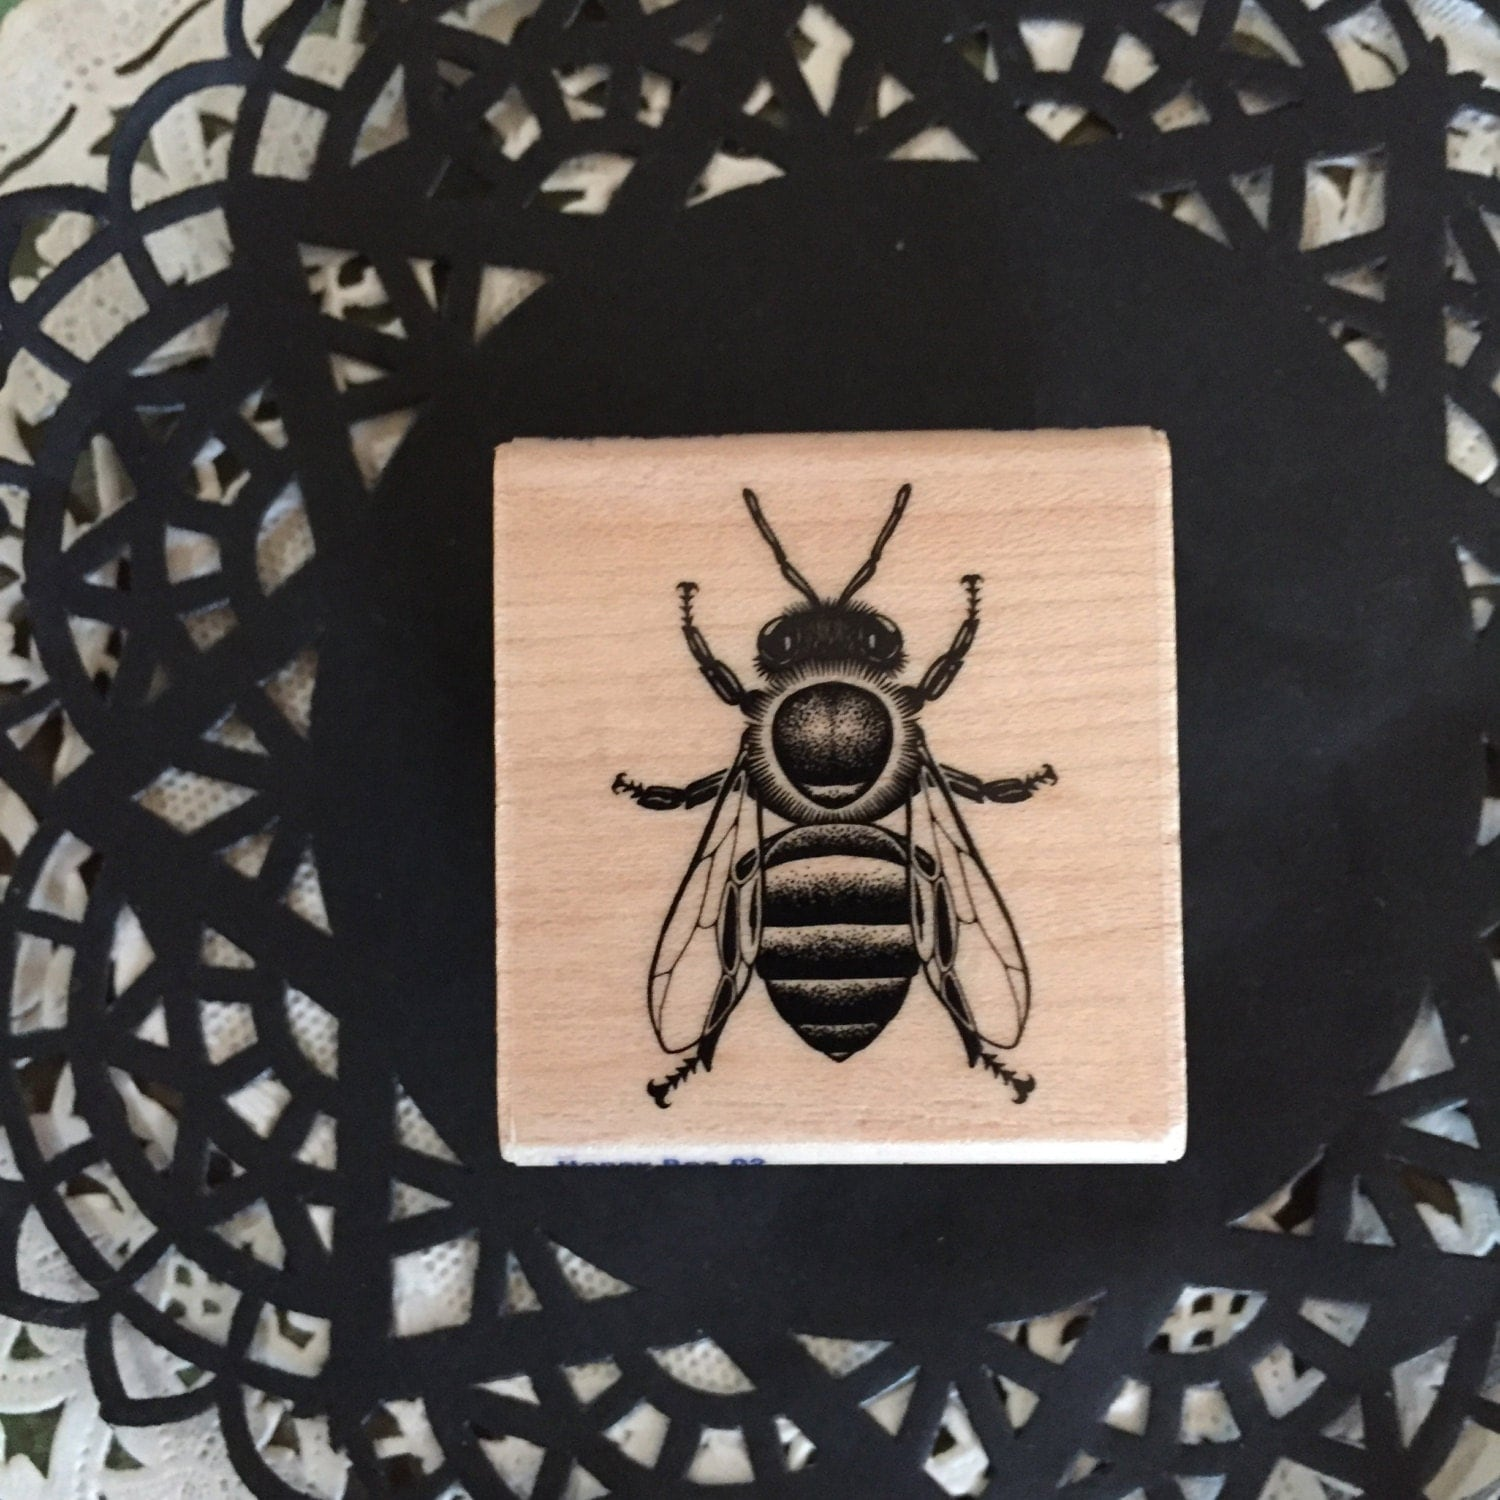 Bumble Bee Rubber stamp by Stampbilities / New Honey Bee Stamp - photo#4